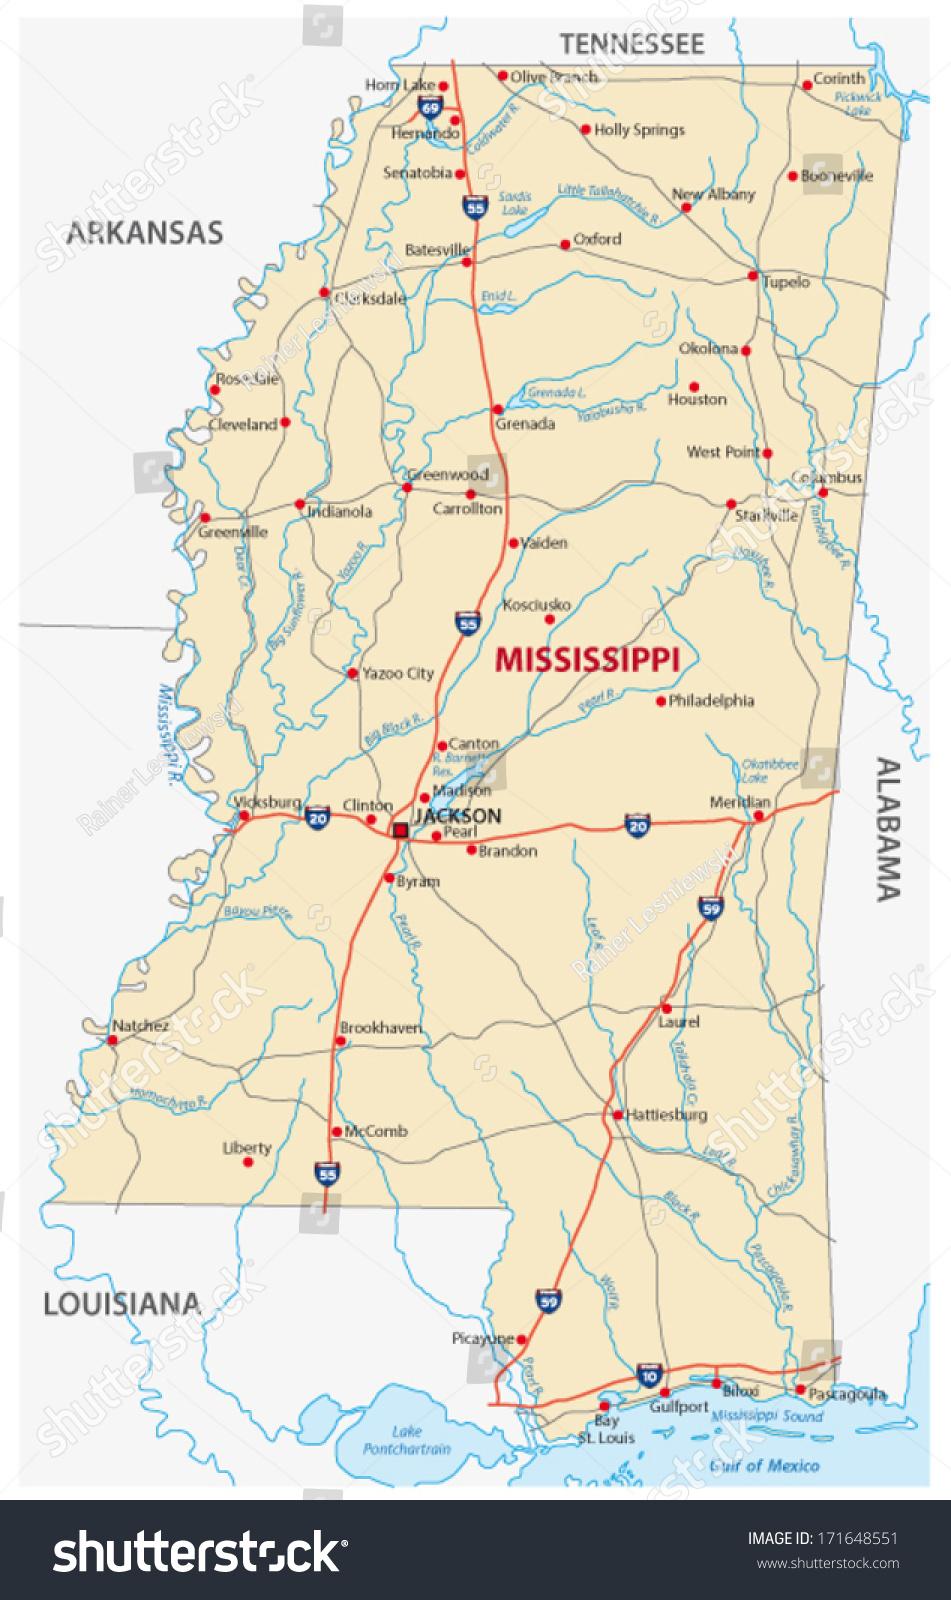 Mississippi Road Map Staten Island Map - Mississippi highway map